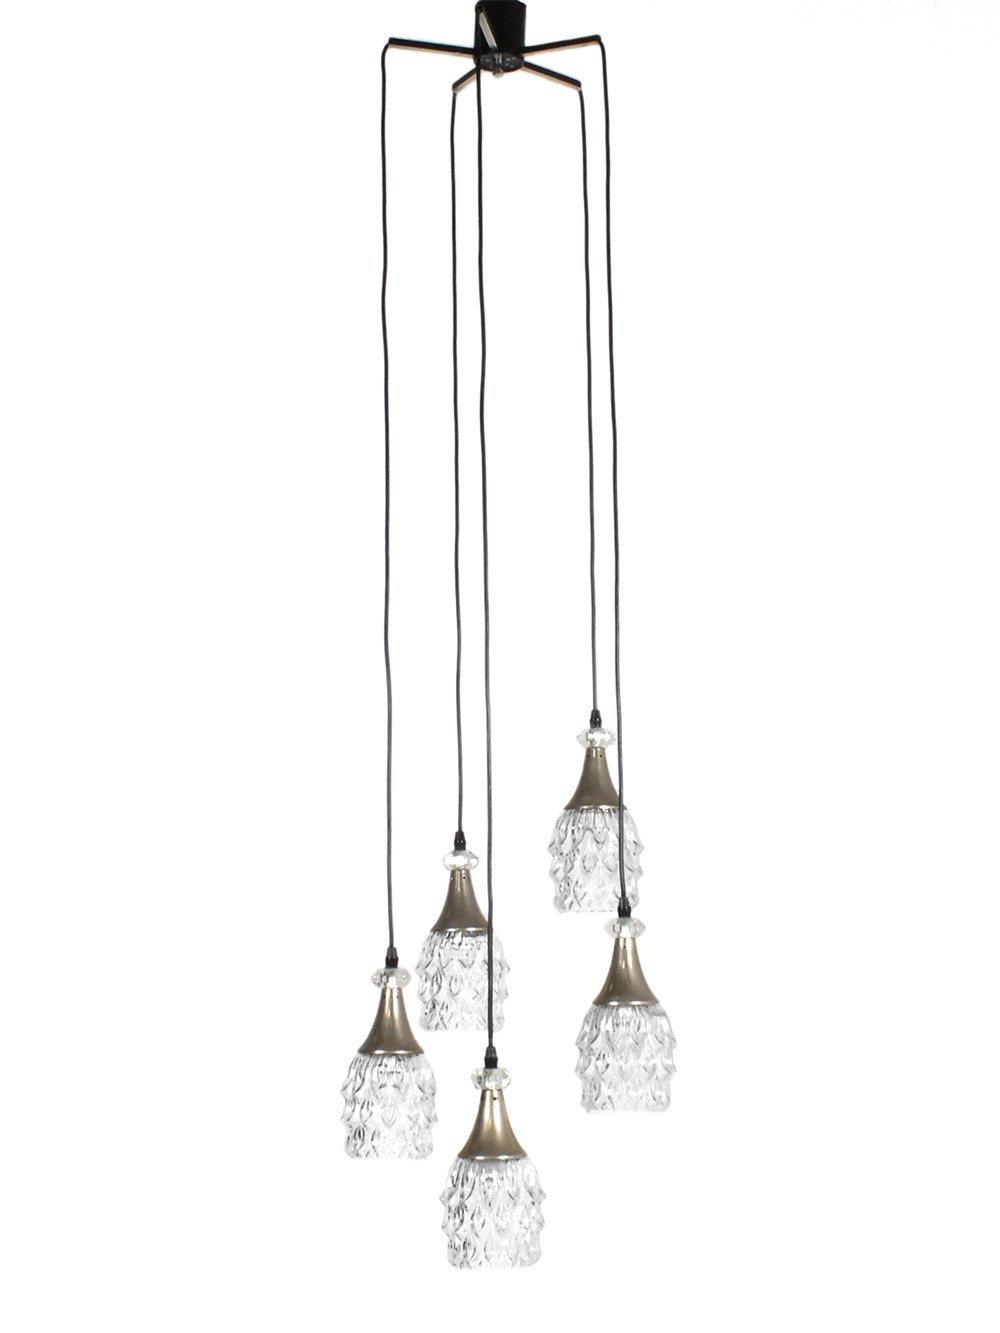 60s Pendant with five molded glass shades